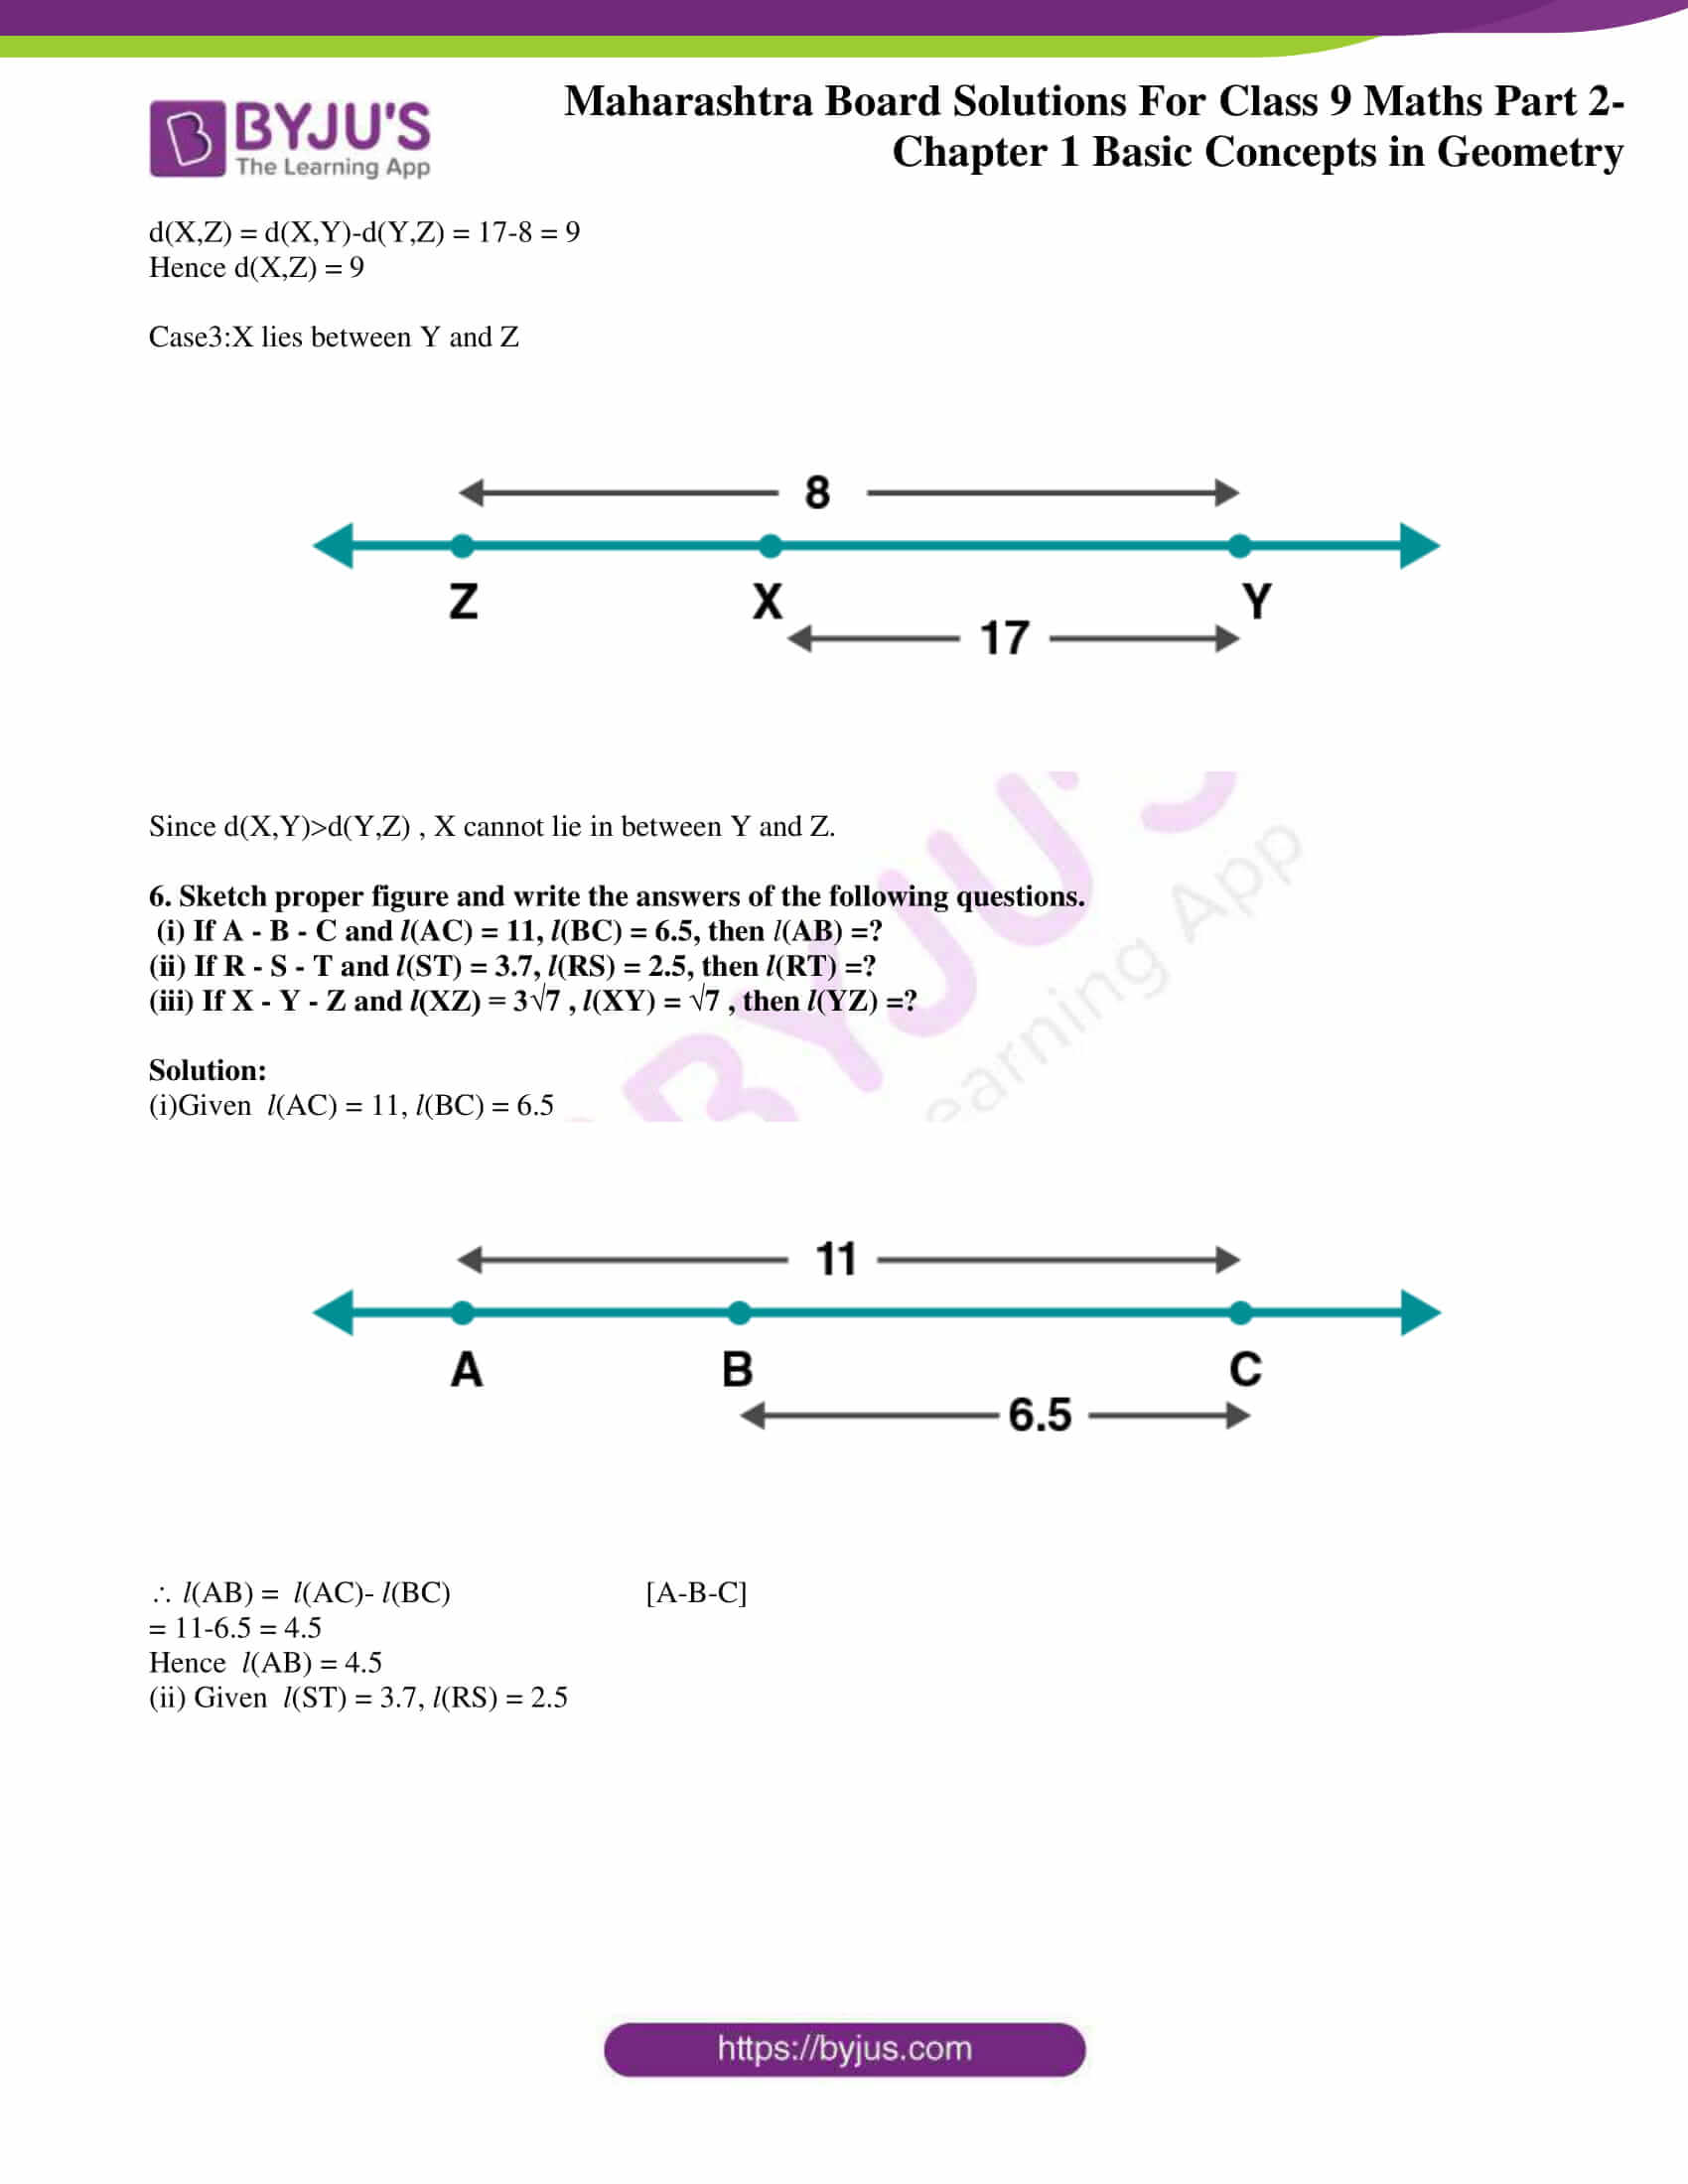 msbshse solutions for class 9 maths part 2 chapter 1 06